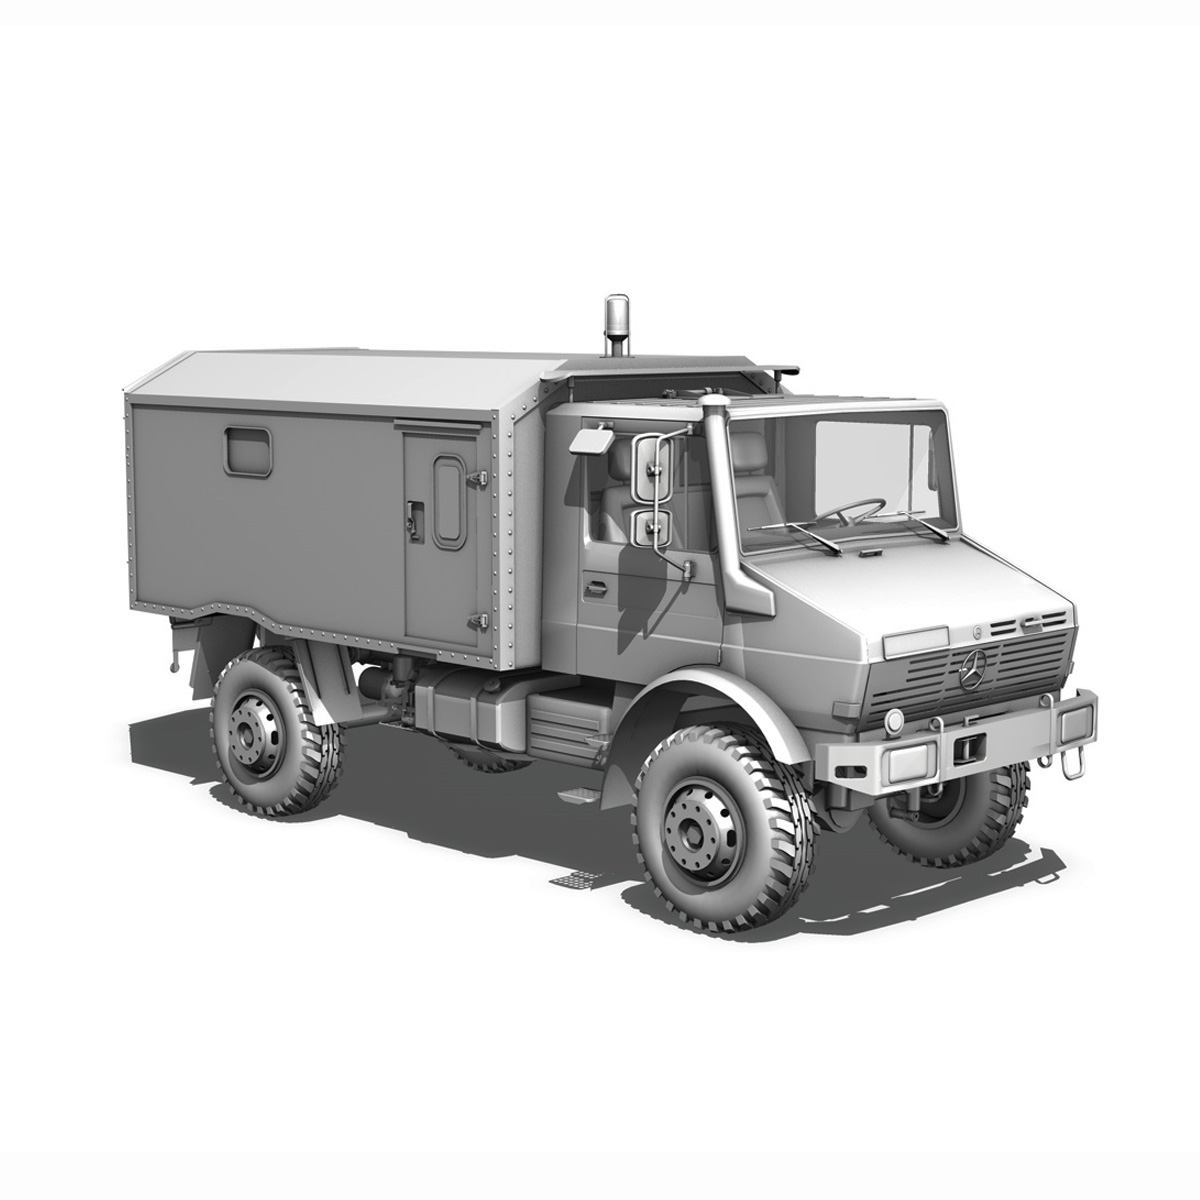 mercedes benz unimog u1300l – ambulance trailer 3d model 3ds fbx c4d lwo obj 189596